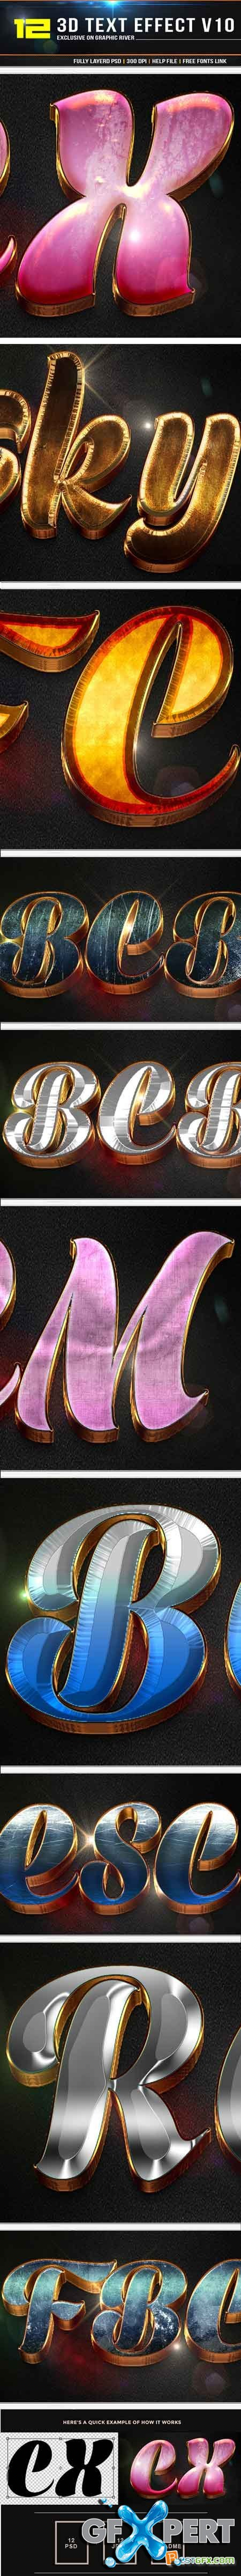 Graphicriver 12 3d Text Effect v10 11585497